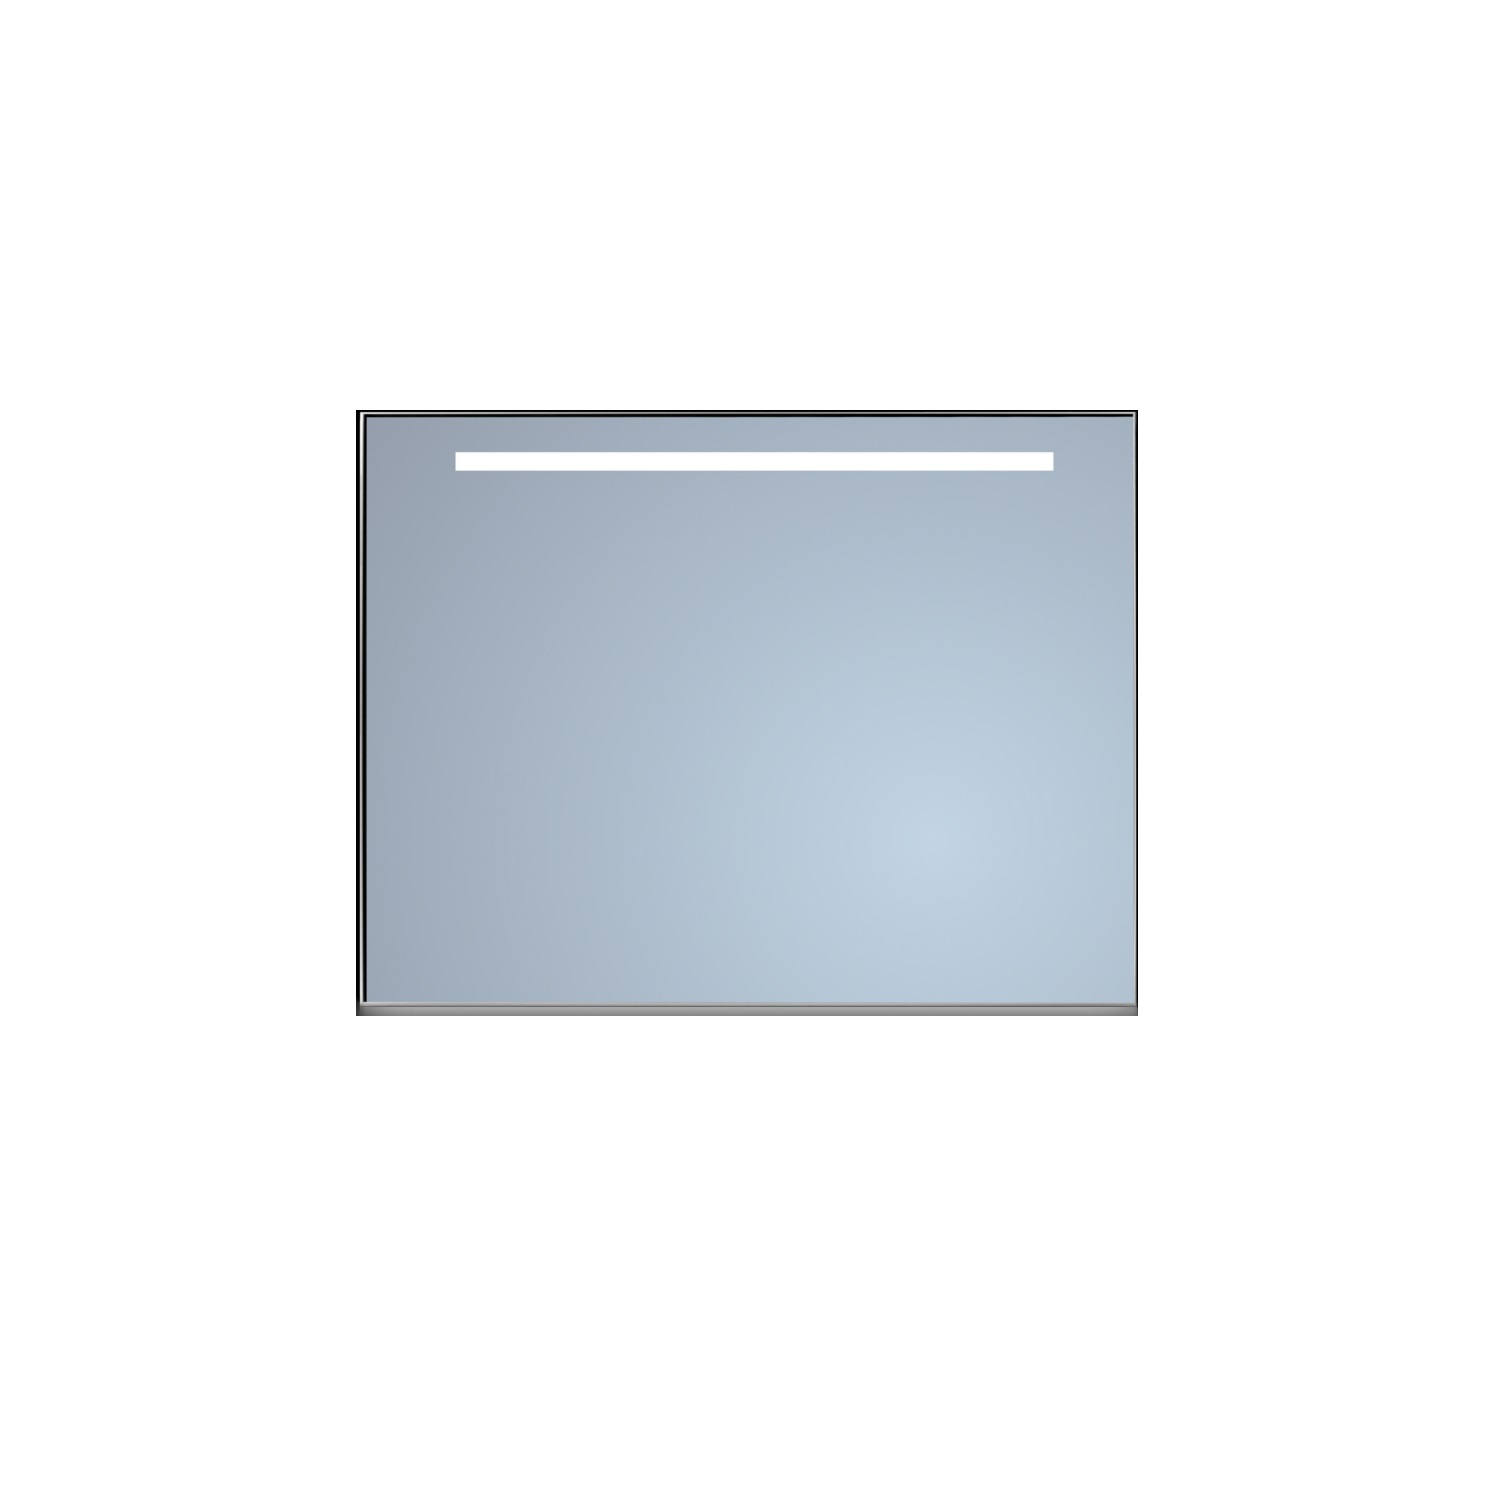 Badkamerspiegel Sanicare Q-Mirrors Ambiance en 'Cold White' LED-verlichting 70x65x3,5 Alu Omlijsting